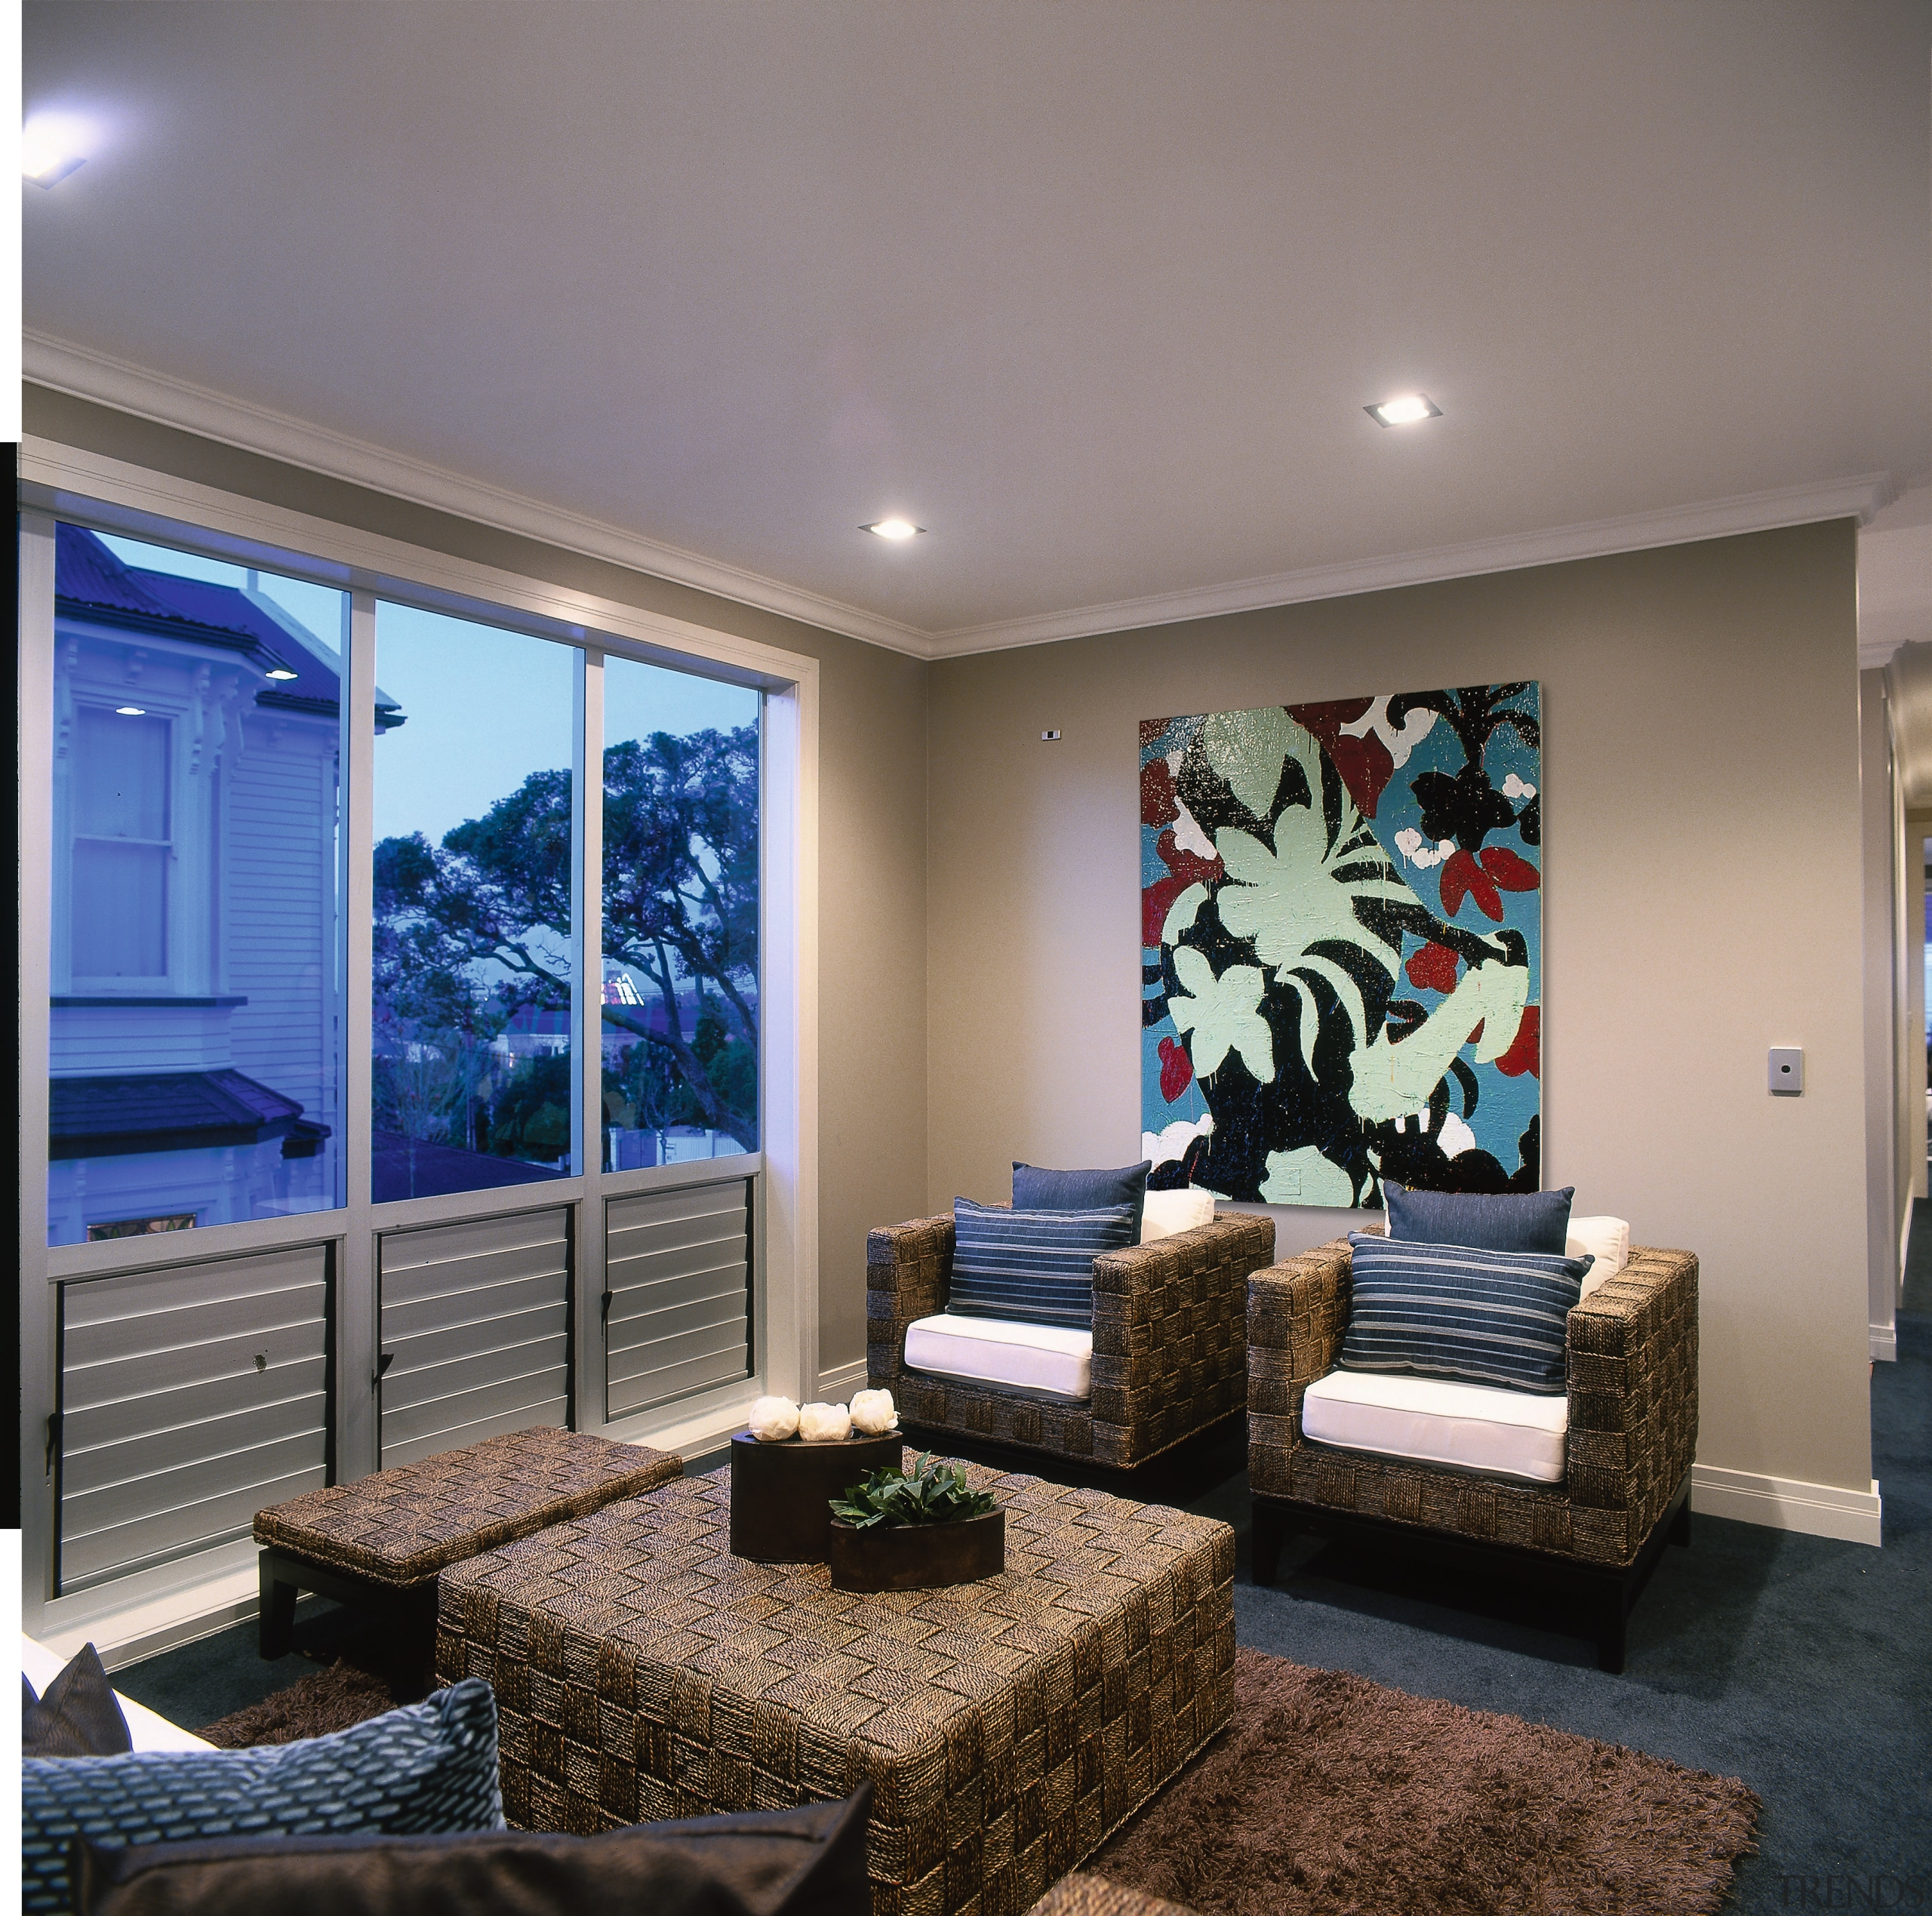 View of this living area - View of ceiling, condominium, home, interior design, living room, real estate, room, wall, window, gray